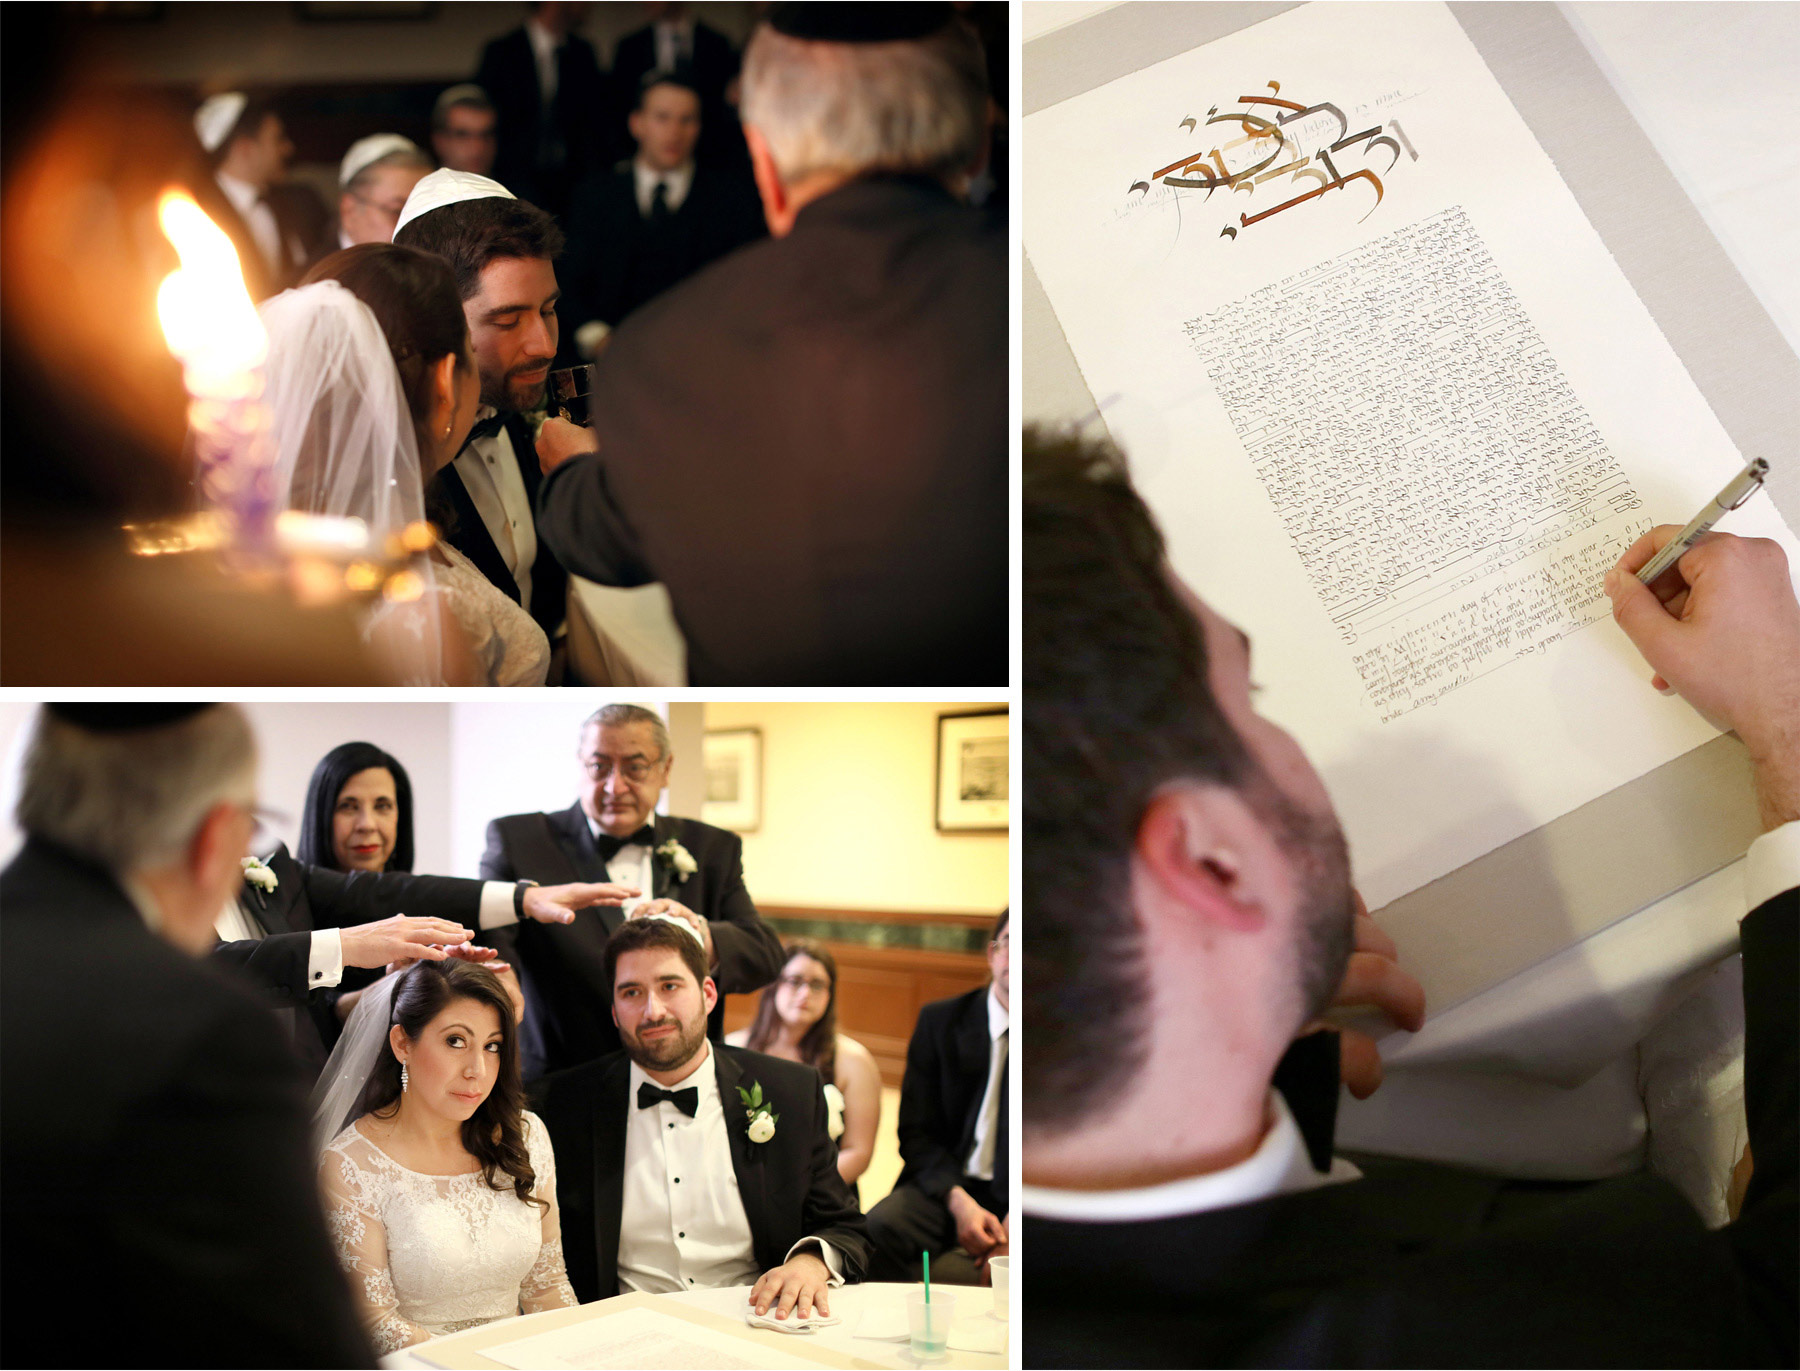 10-Minneapolis-Minnesota-Wedding-Photographer-by-Andrew-Vick-Photography-Winter-Hyatt-Regency-Hotel-Ceremony-Bride-Groom-Family-Prayer-Ketubah-Amy-and-Jordan.jpg